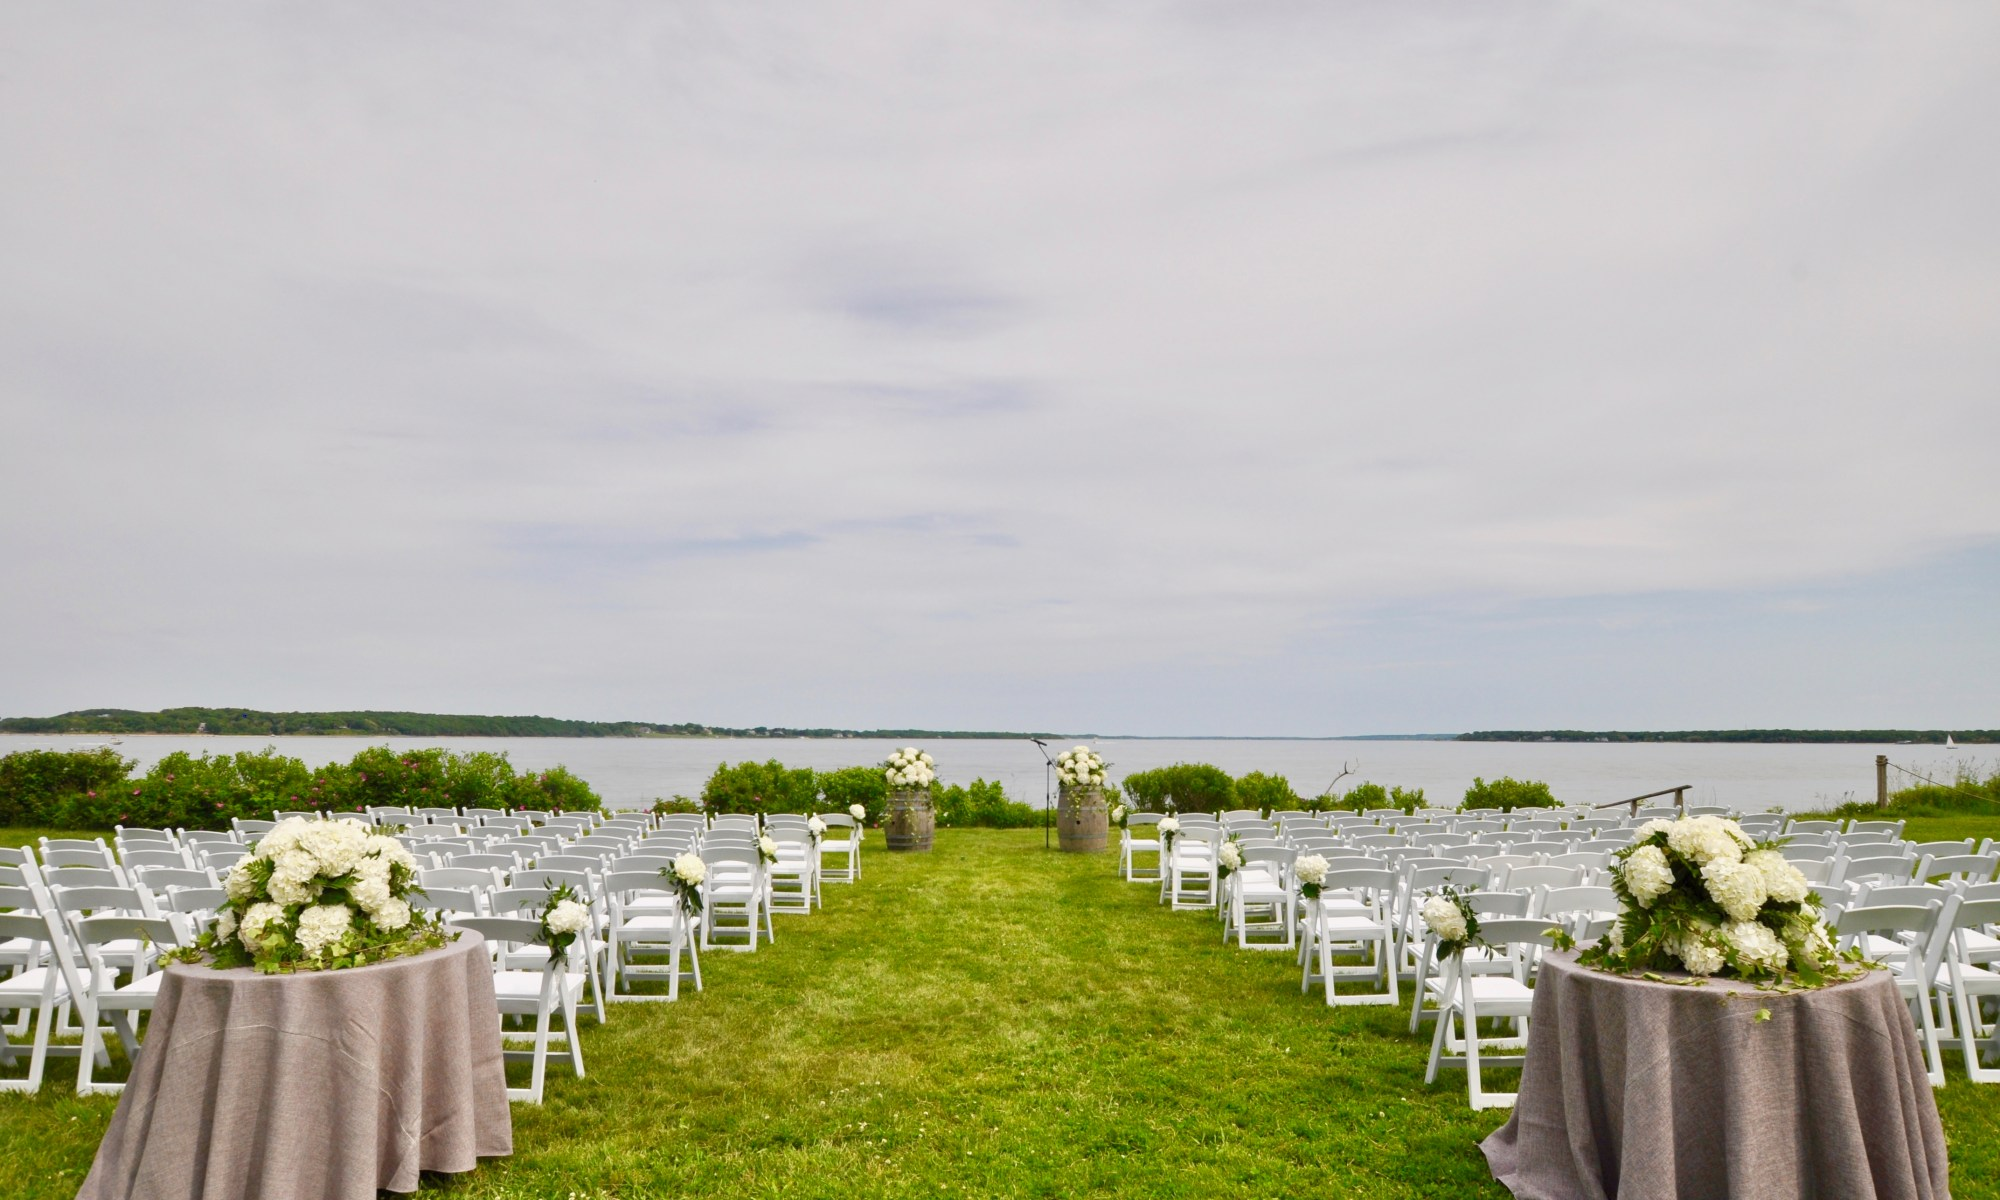 An isle with rows of white chairs on a green lawn overlooking Peconic Bay with flowers